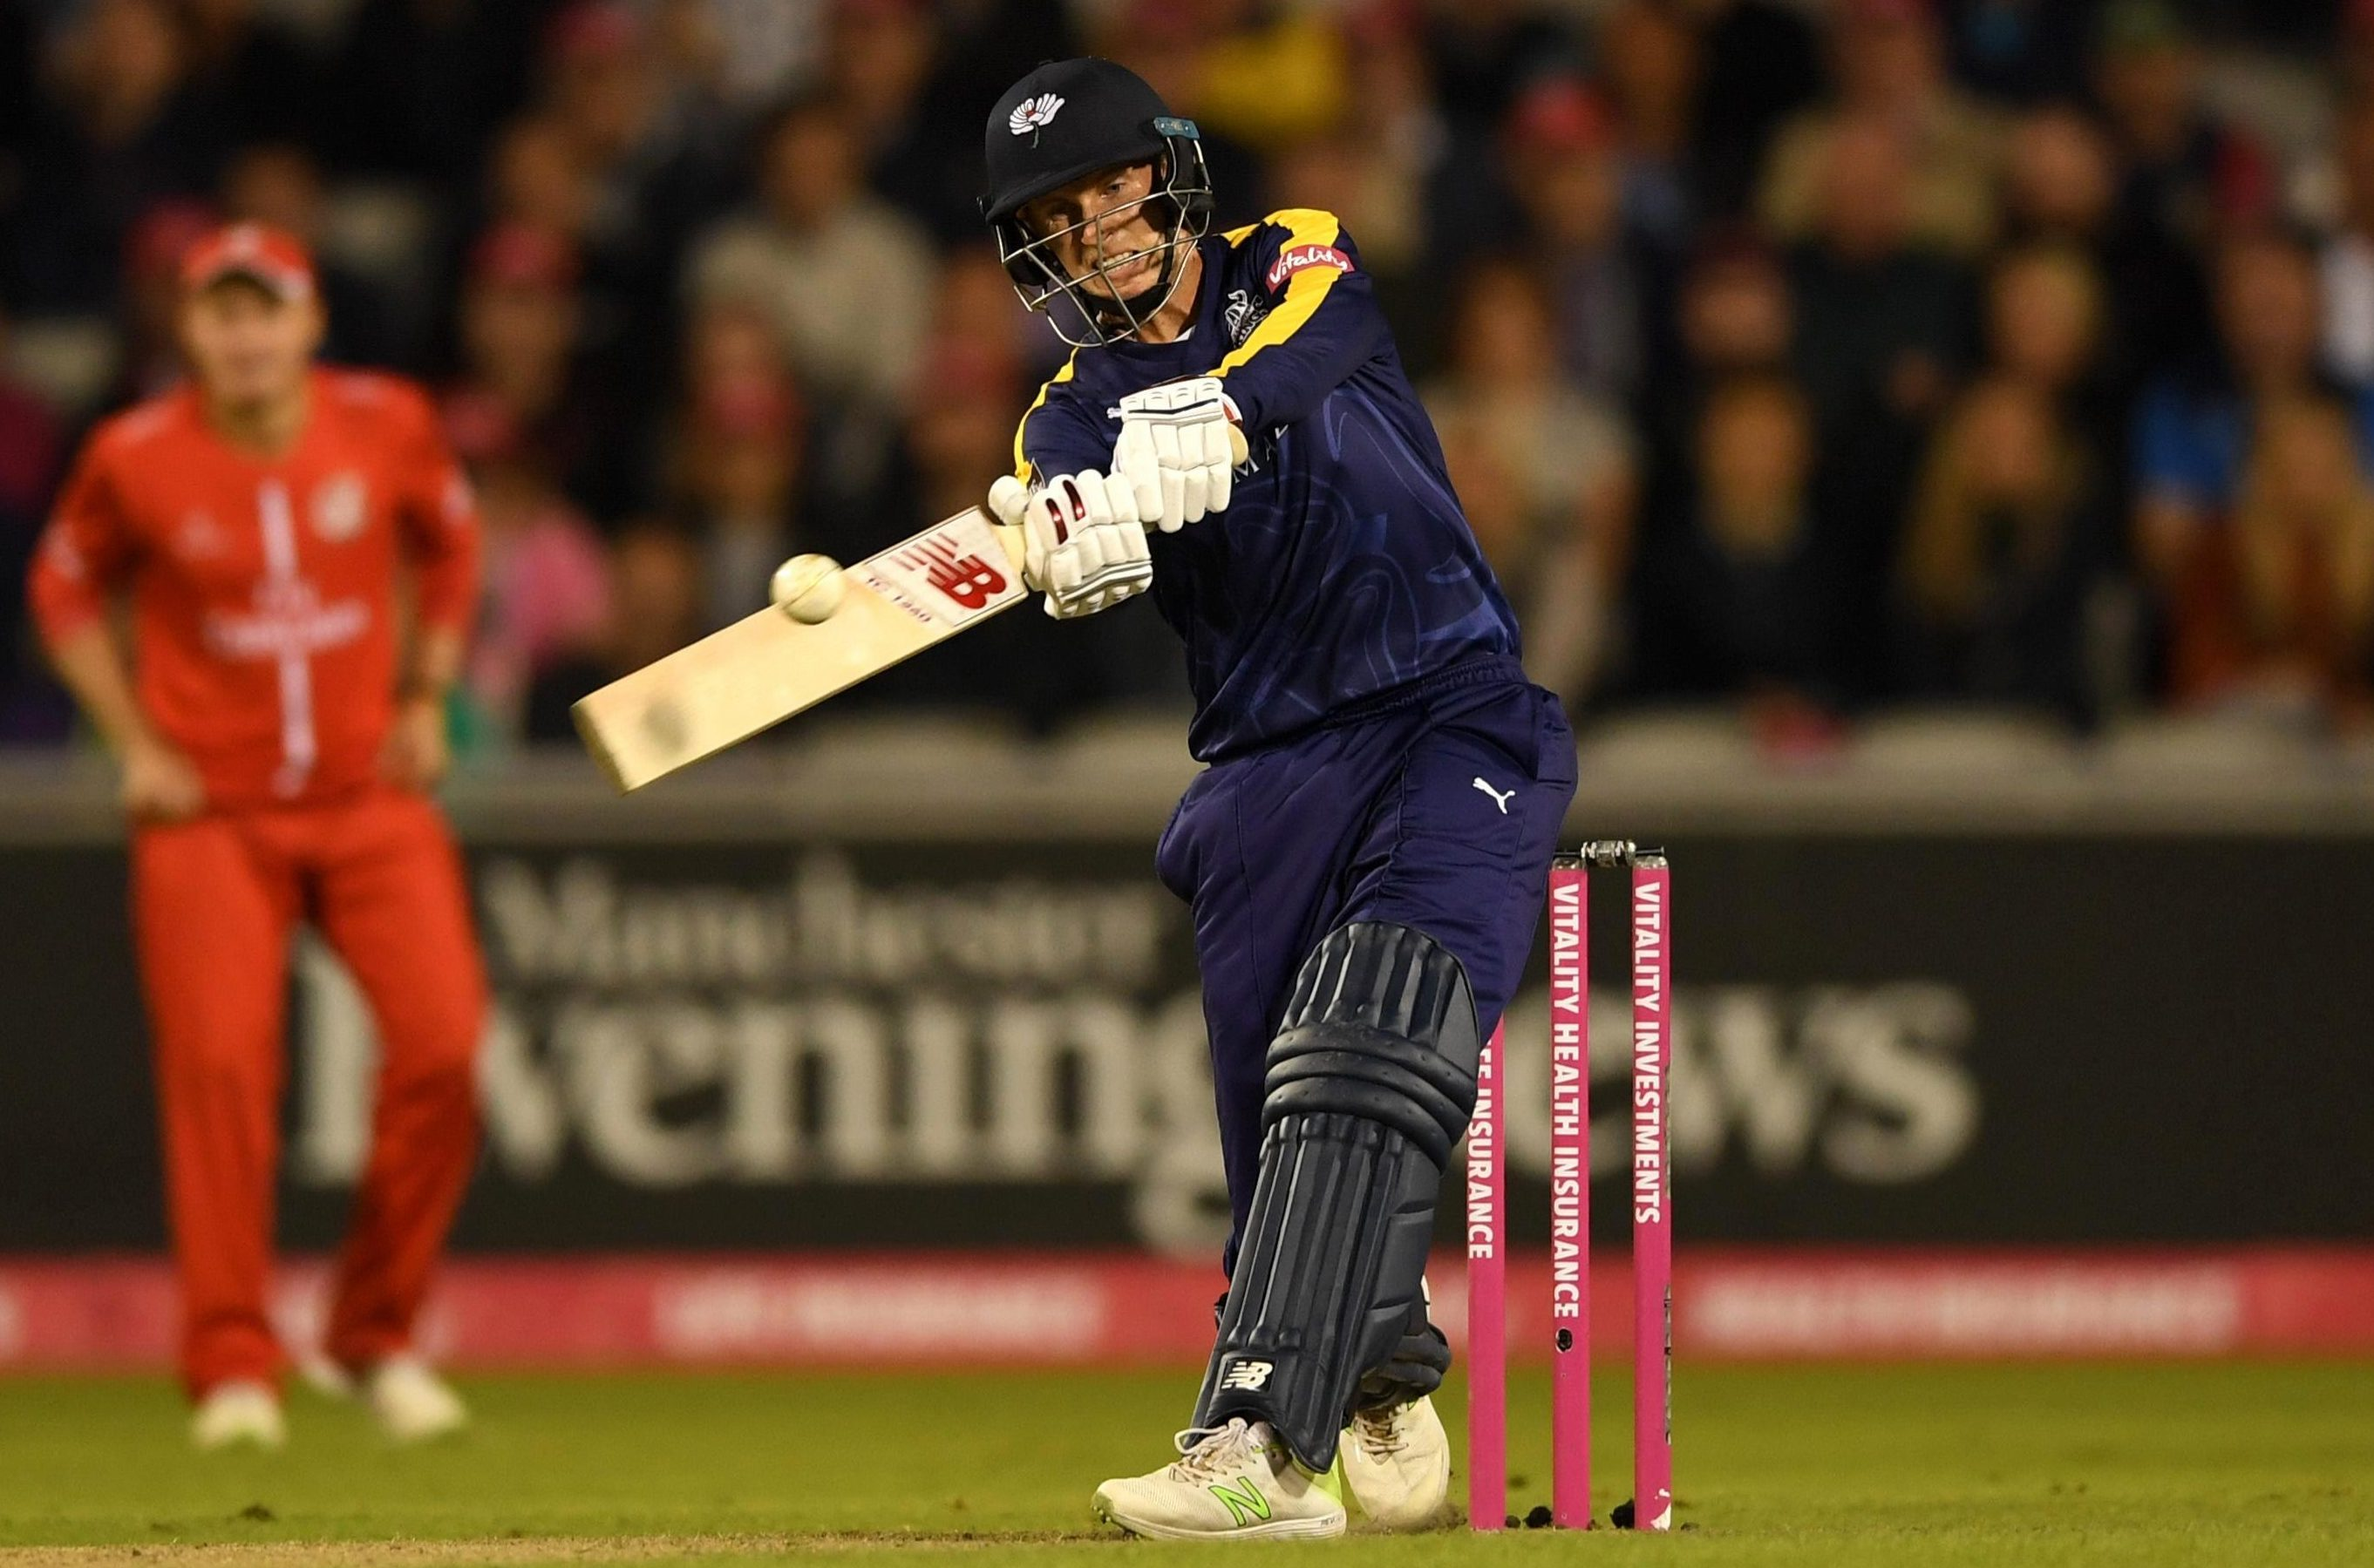 Joe Root smashed a fifty but could not see Yorkshire over the line